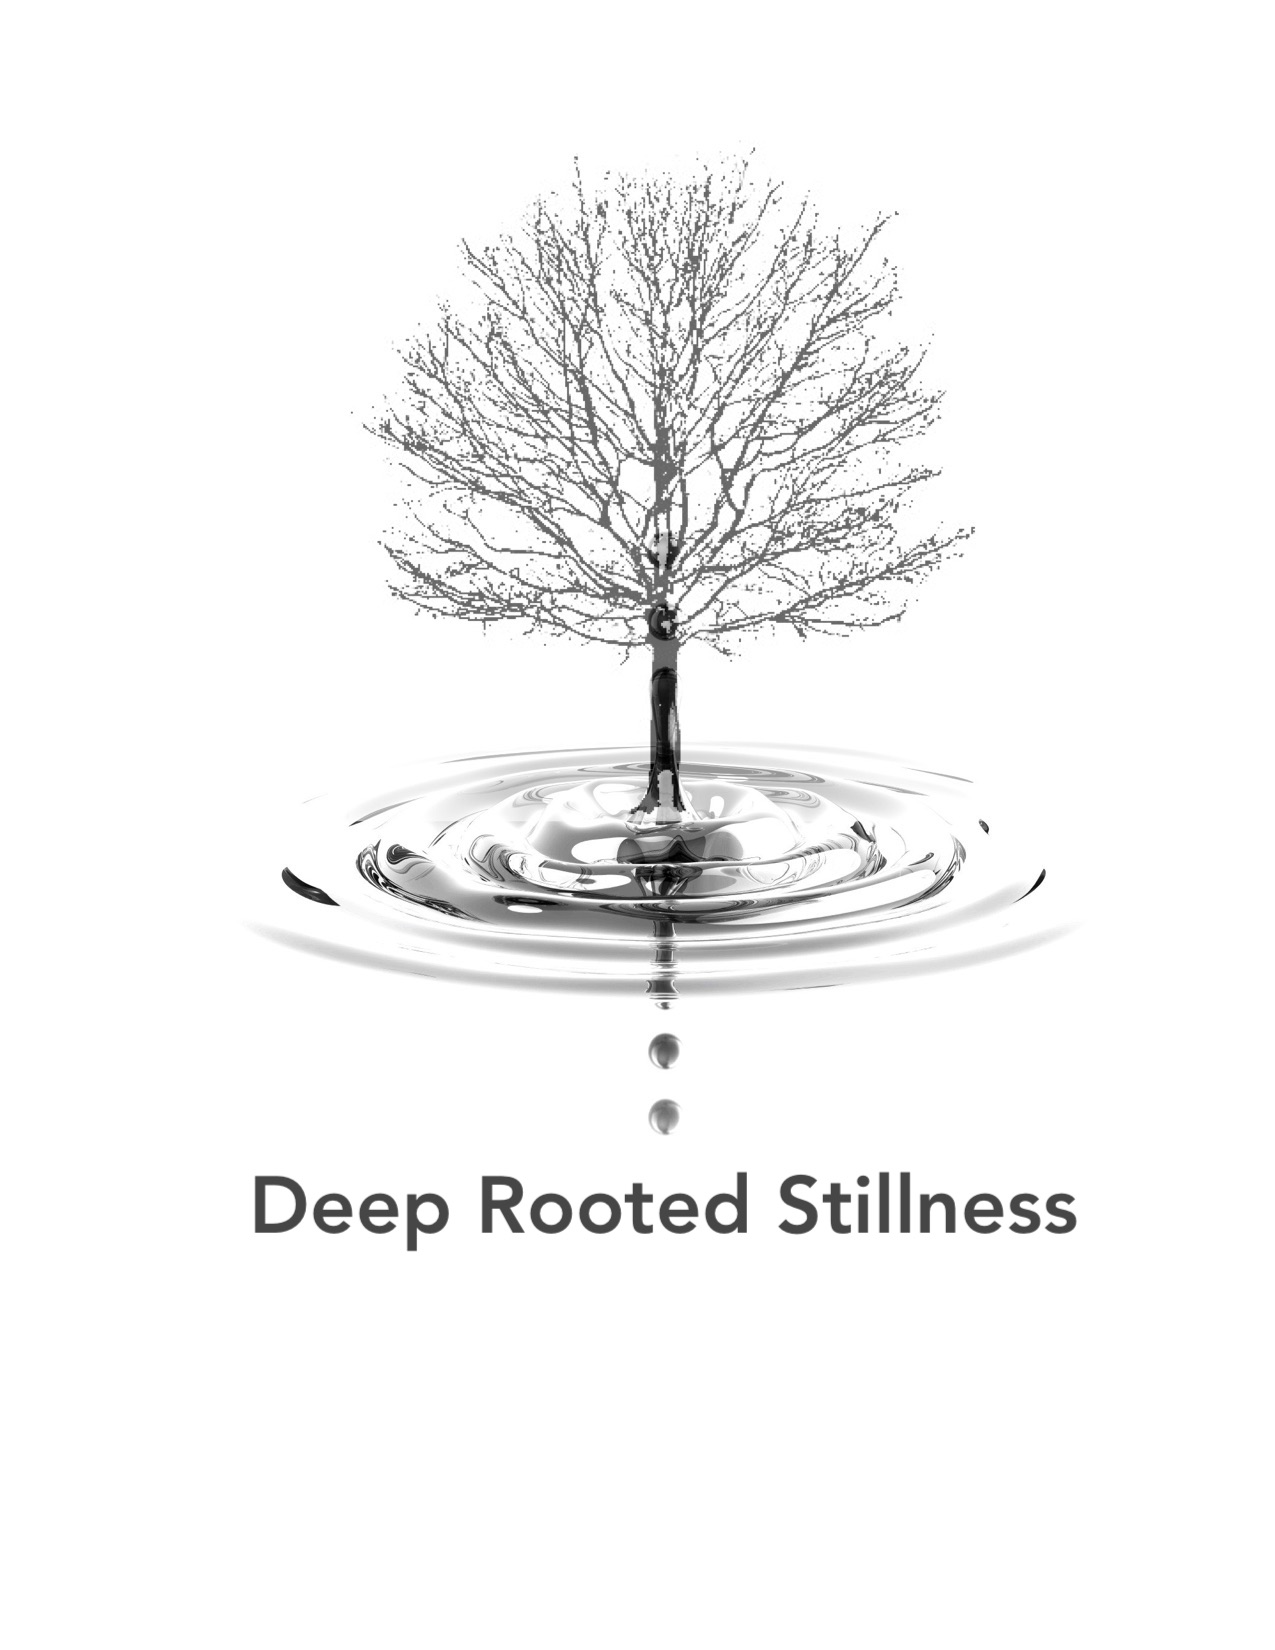 Deep Rooted Stillness